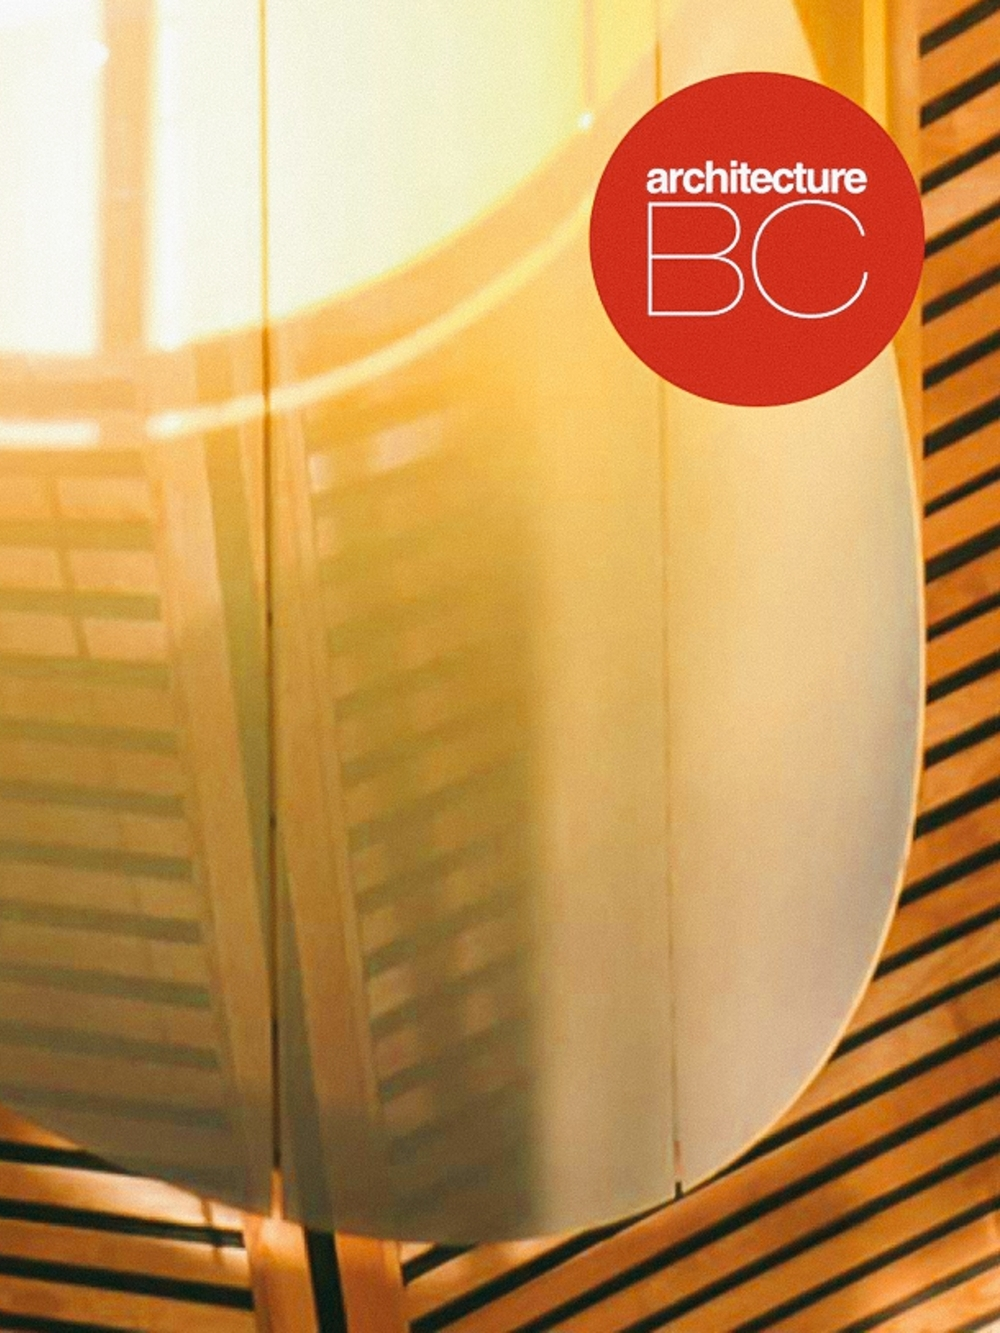 architecture bc cover_web.jpg